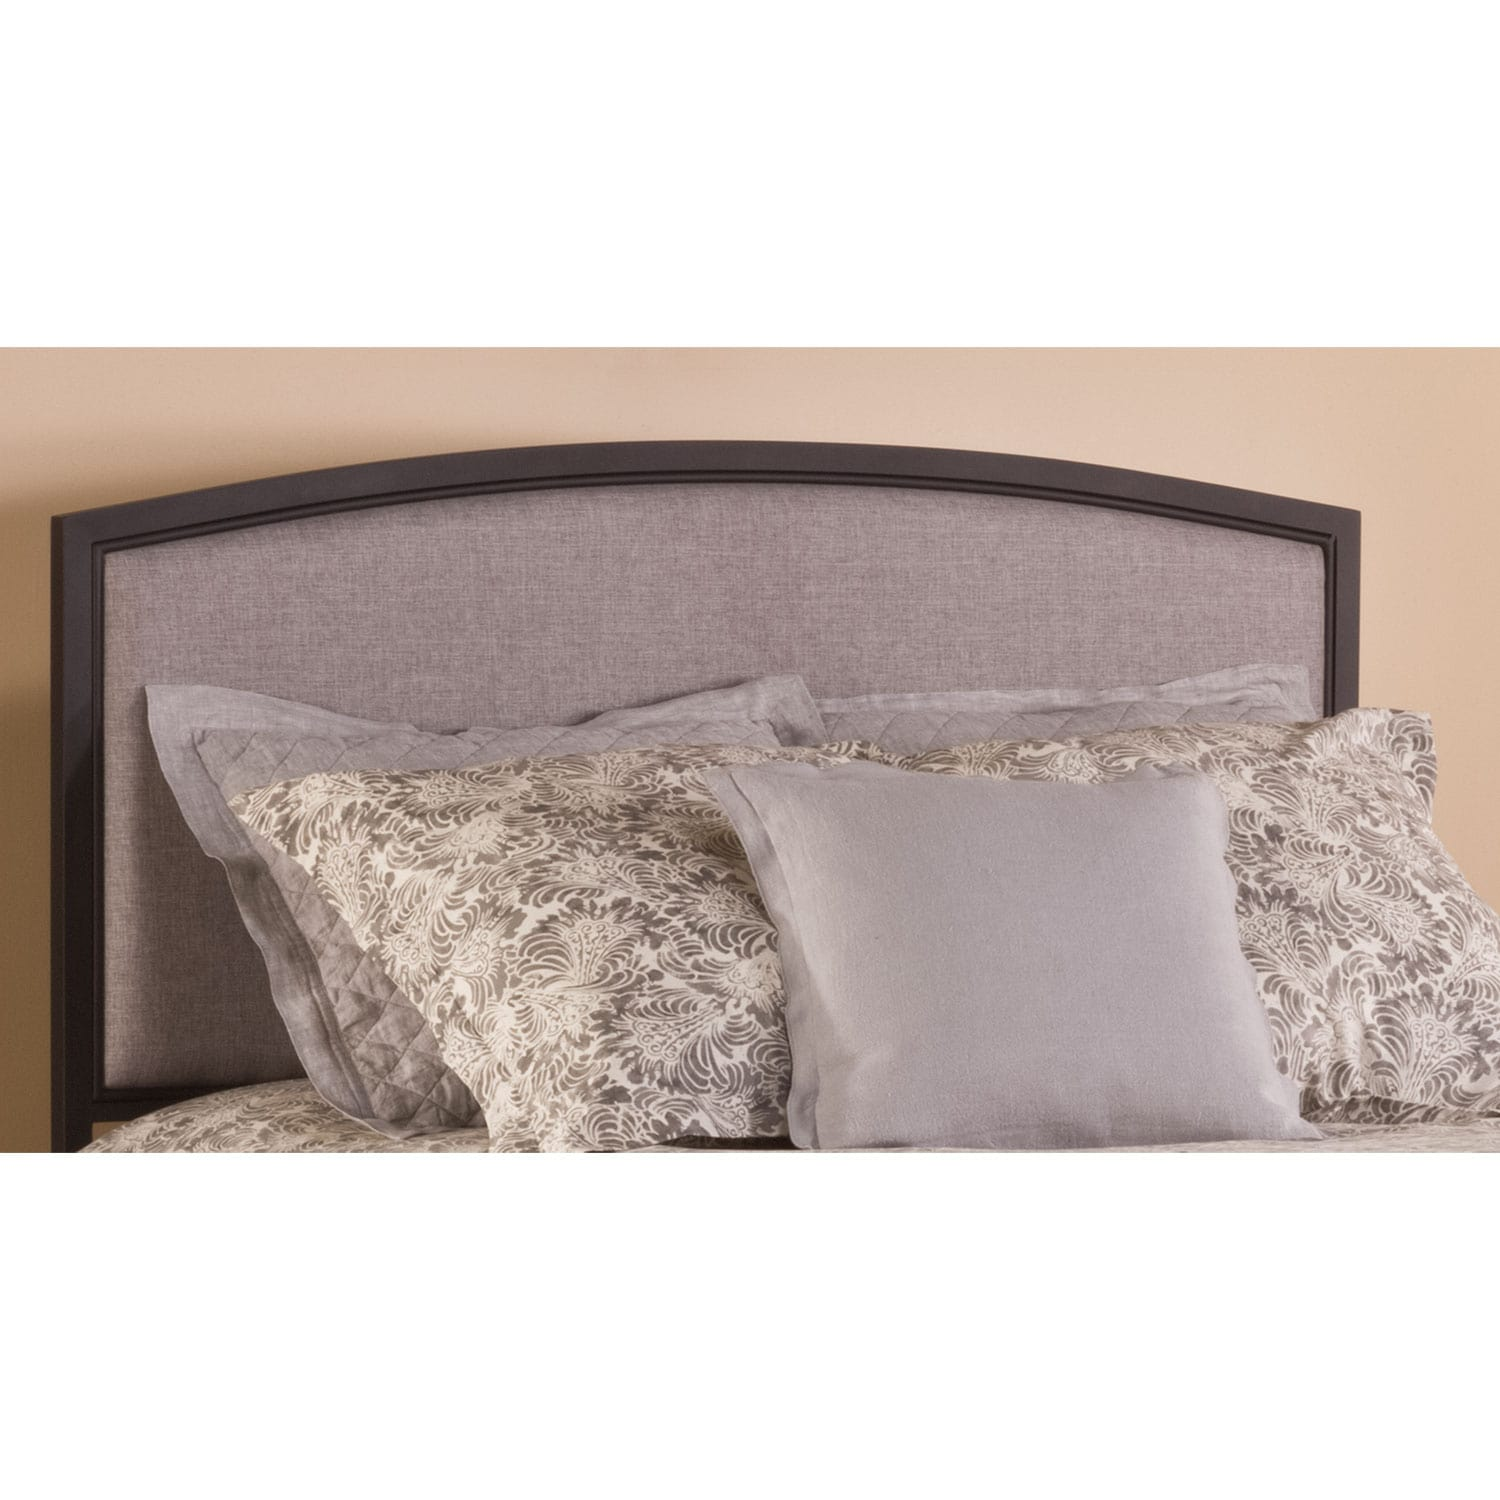 Bedroom Furniture - Bayside King Headboard - Gray